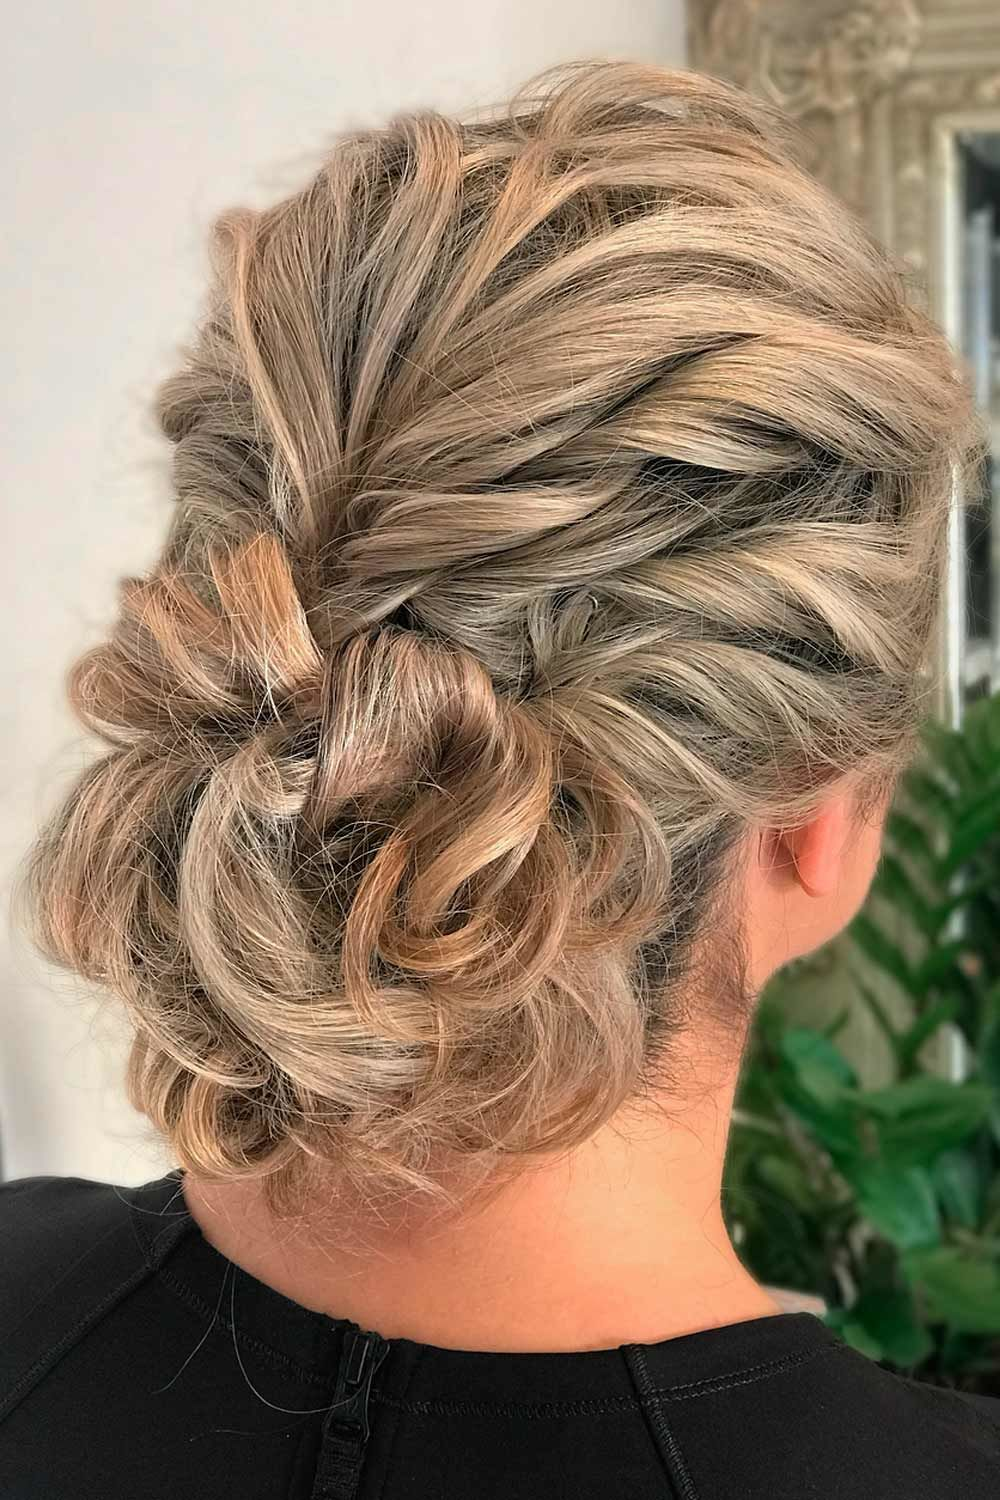 Curly Updo With Long Fringe